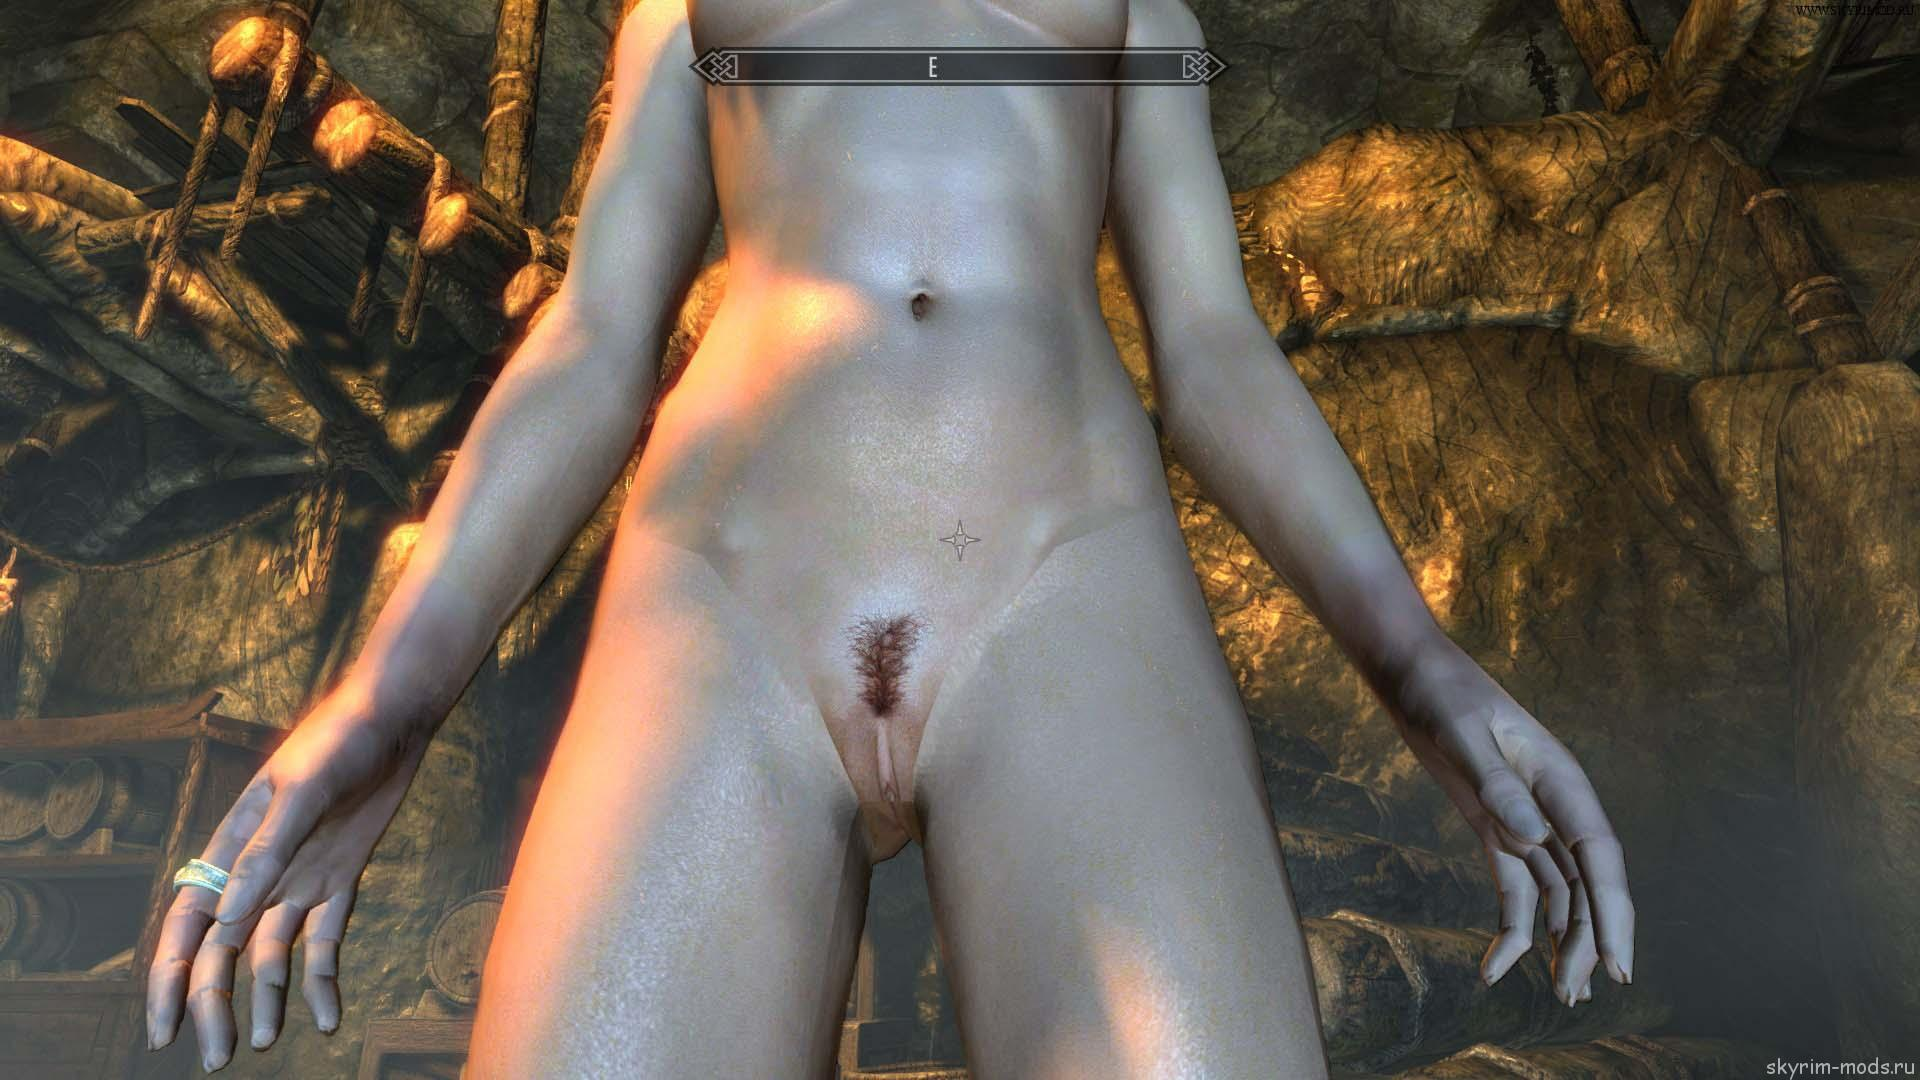 Skyrim female nude mod steam sexual film